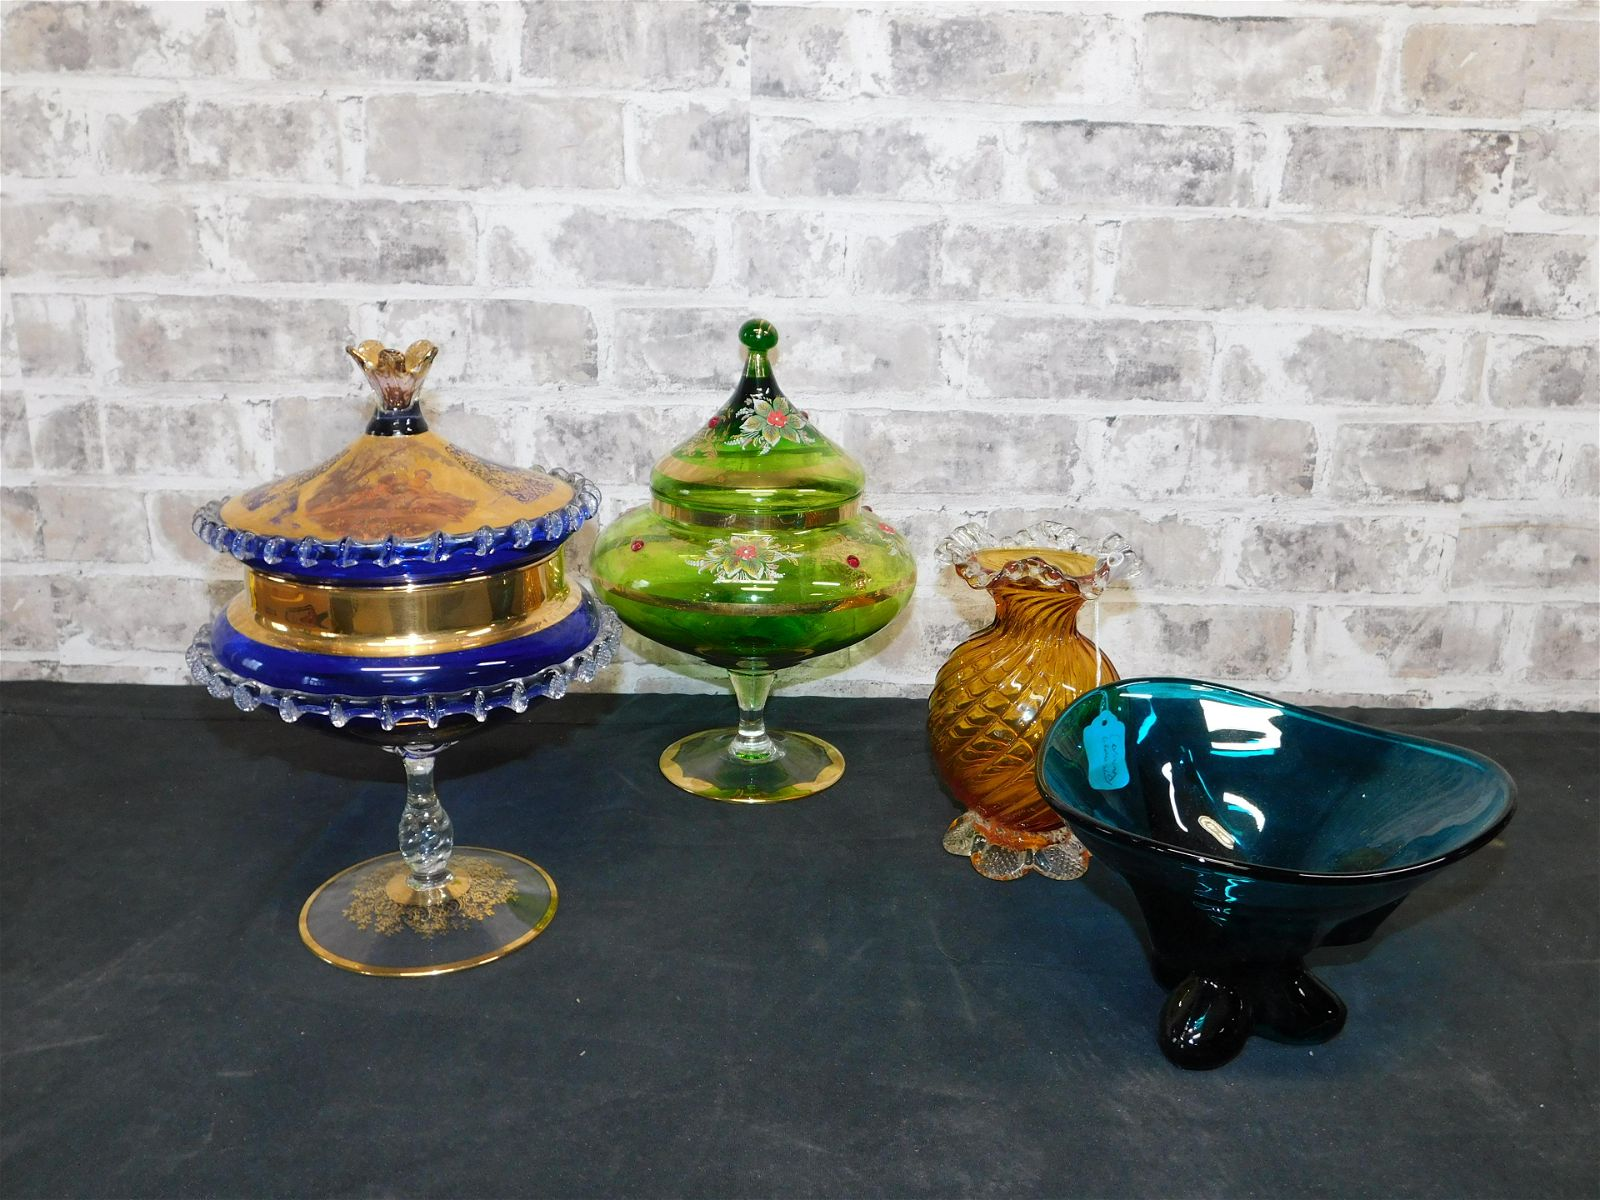 Lot with Art Glass Bowls and Venetian Glass Candy